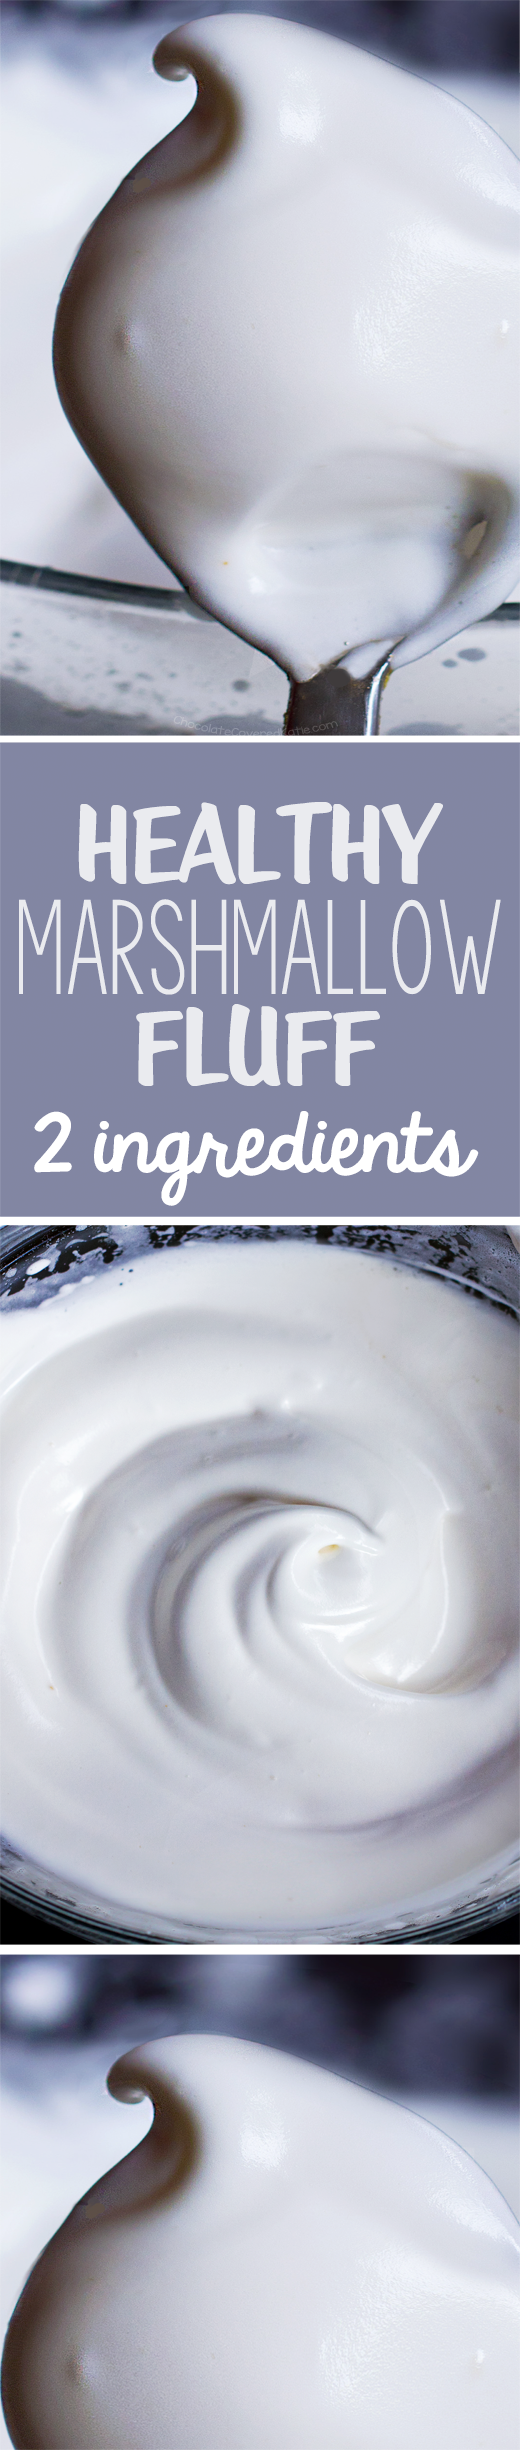 5 minutes + 2 ingredients = the most amazing healthy marshmallow fluff recipe, and it's vegan with aquafaba #veganmarshmallows 5 minutes + 2 ingredients = the most amazing healthy marshmallow fluff recipe, and it's vegan with aquafaba #healthymarshmallows